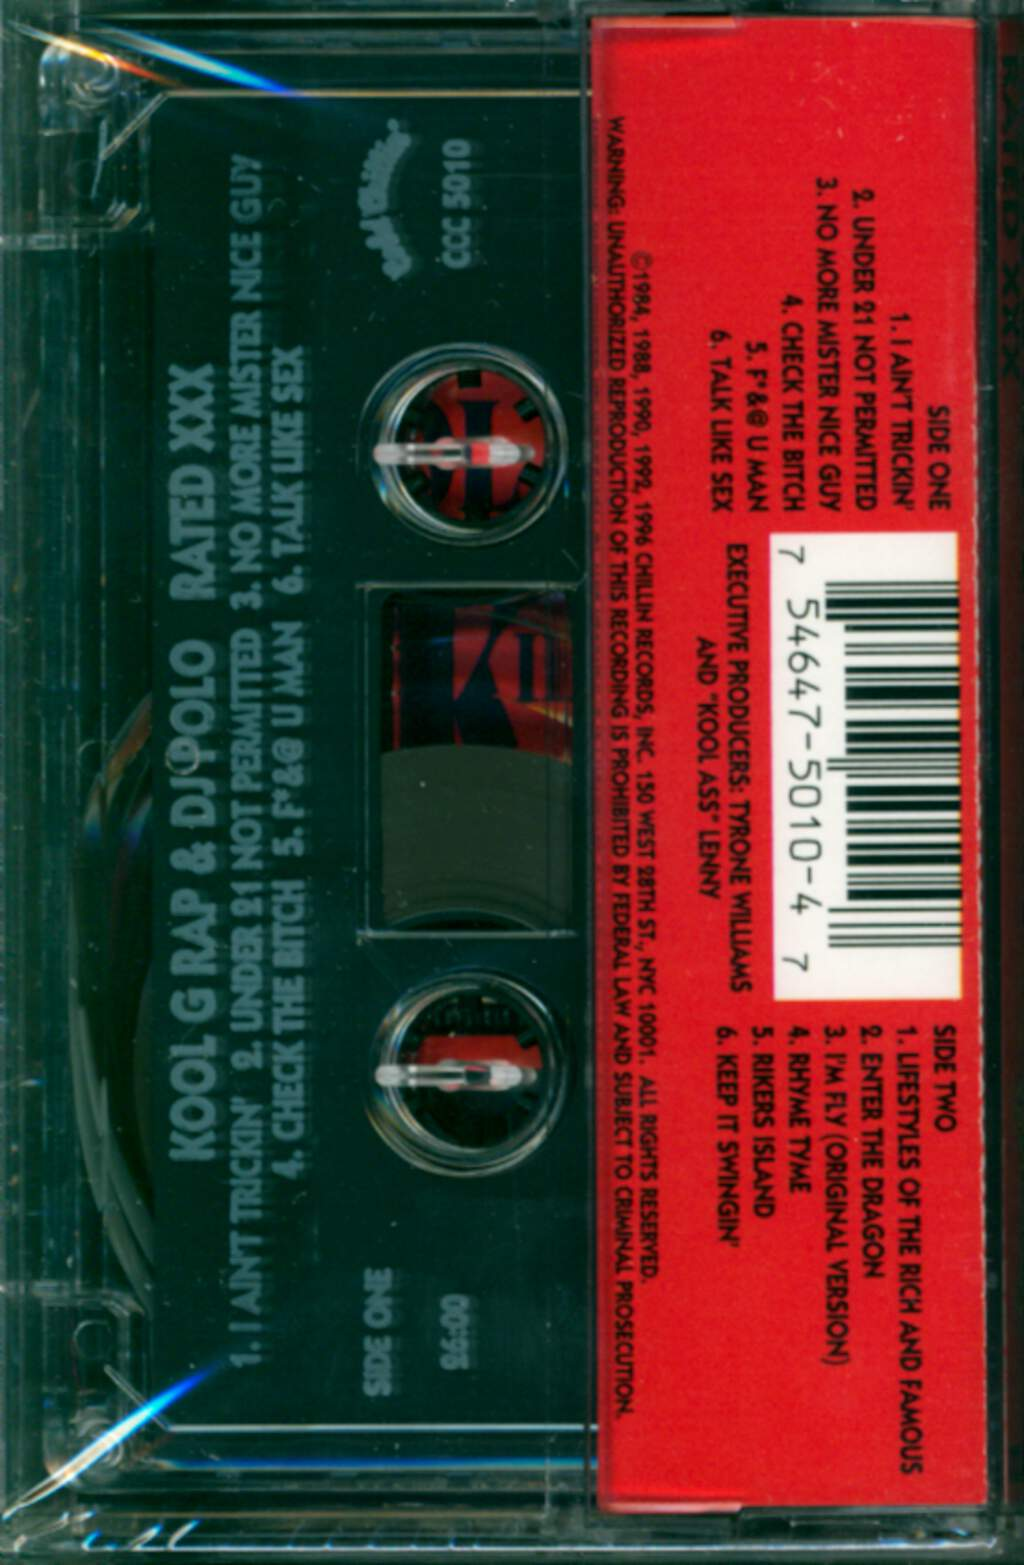 Kool G Rap & D.J. Polo: Rated XXX, Compact Cassette